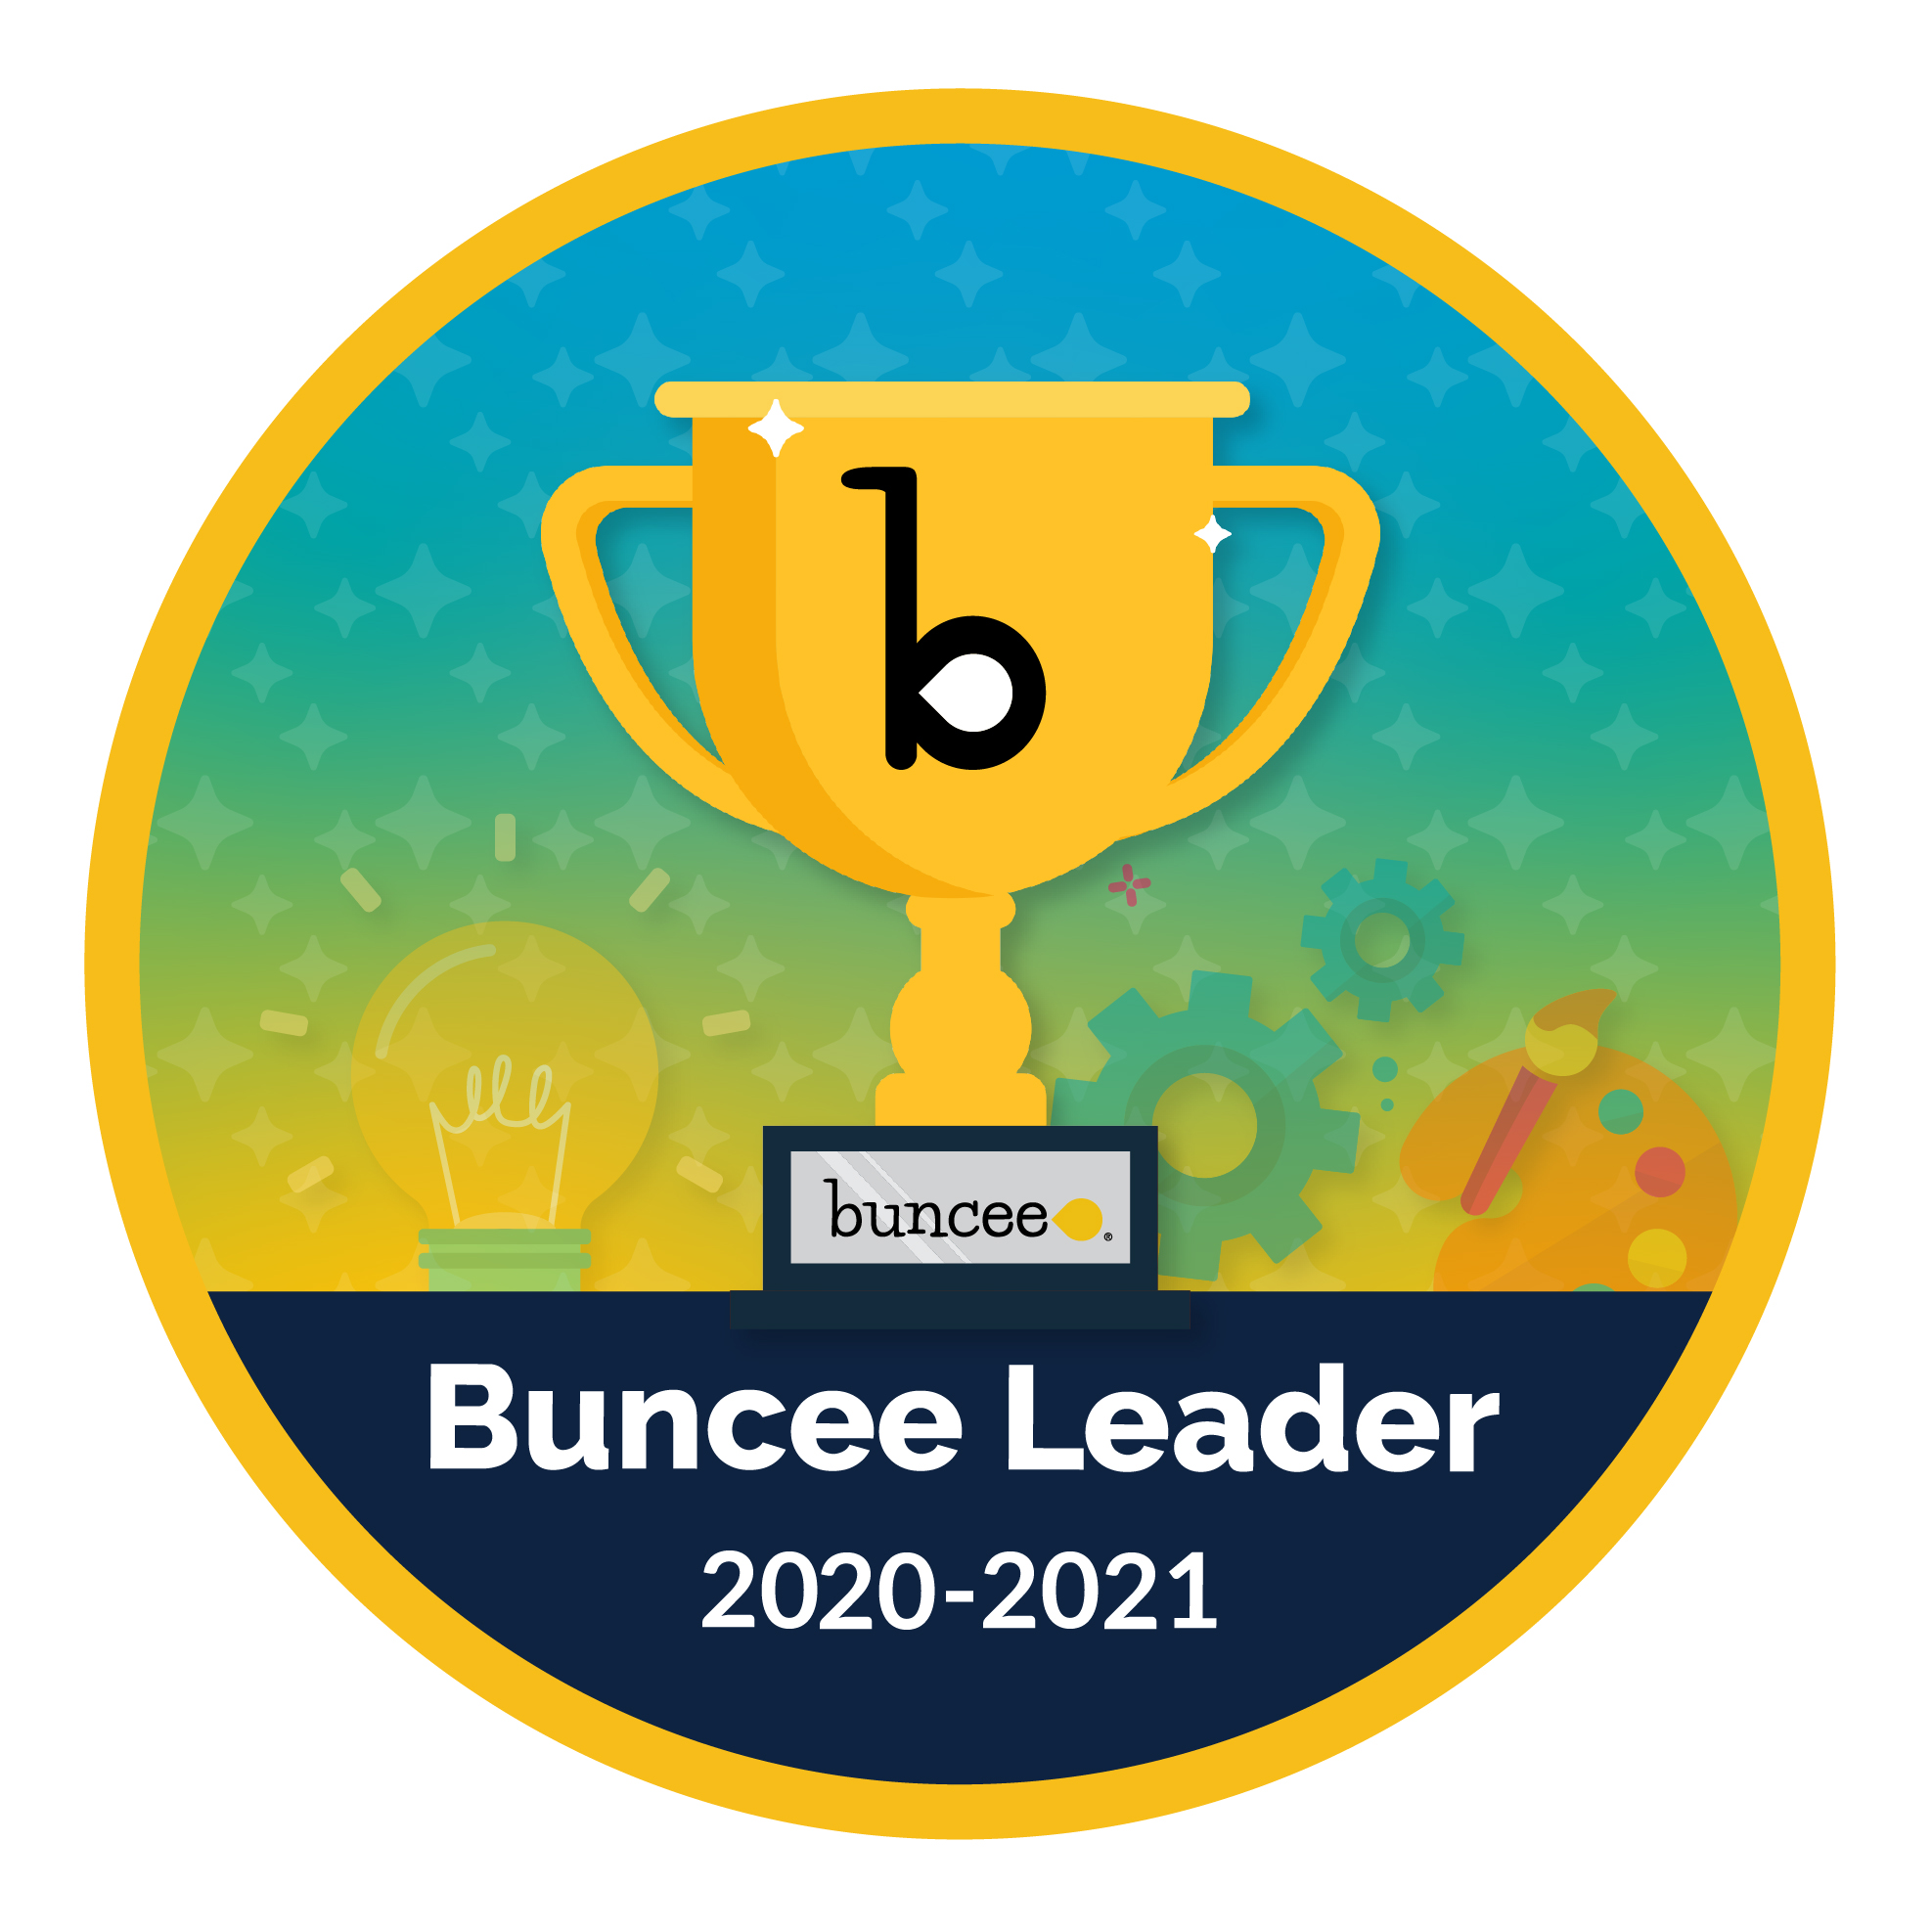 Buncee Leader